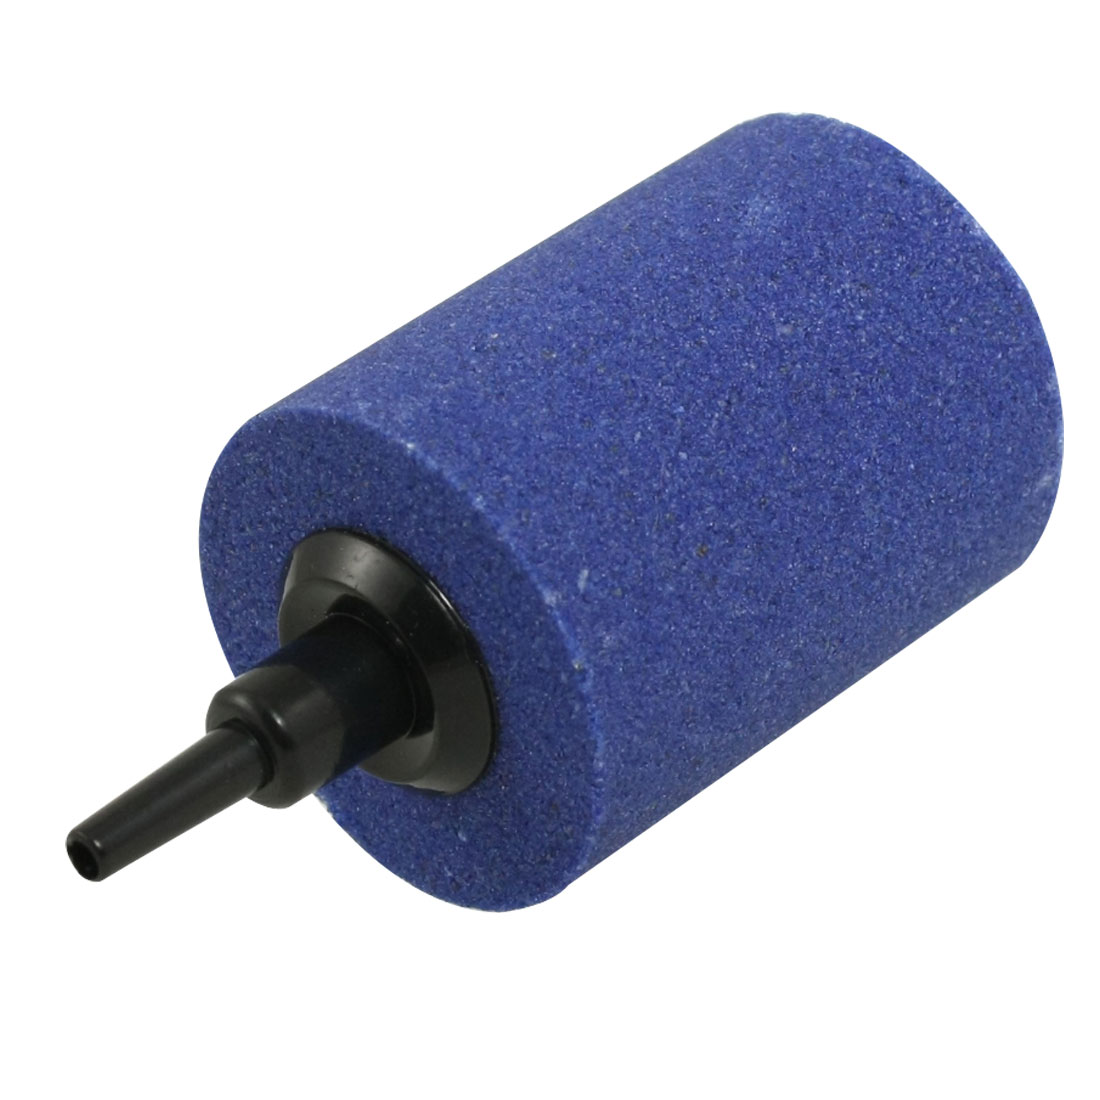 "Blue 1.5"" Dia Cylinder Bubble Air Stone for Fish Tank Aquarium"